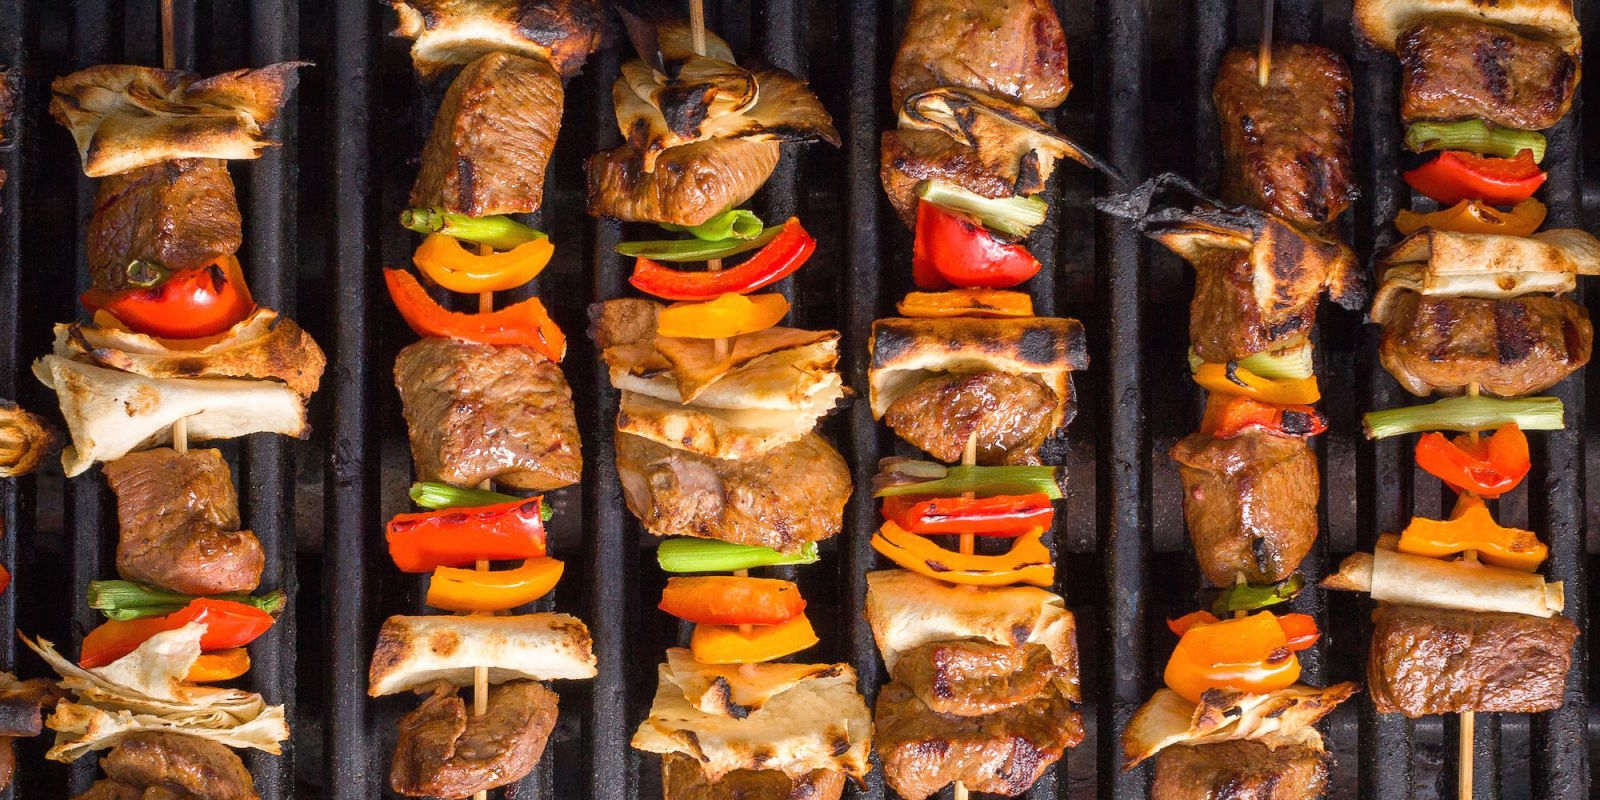 100 Best Grilling Ideas Things To Cook On The Grill